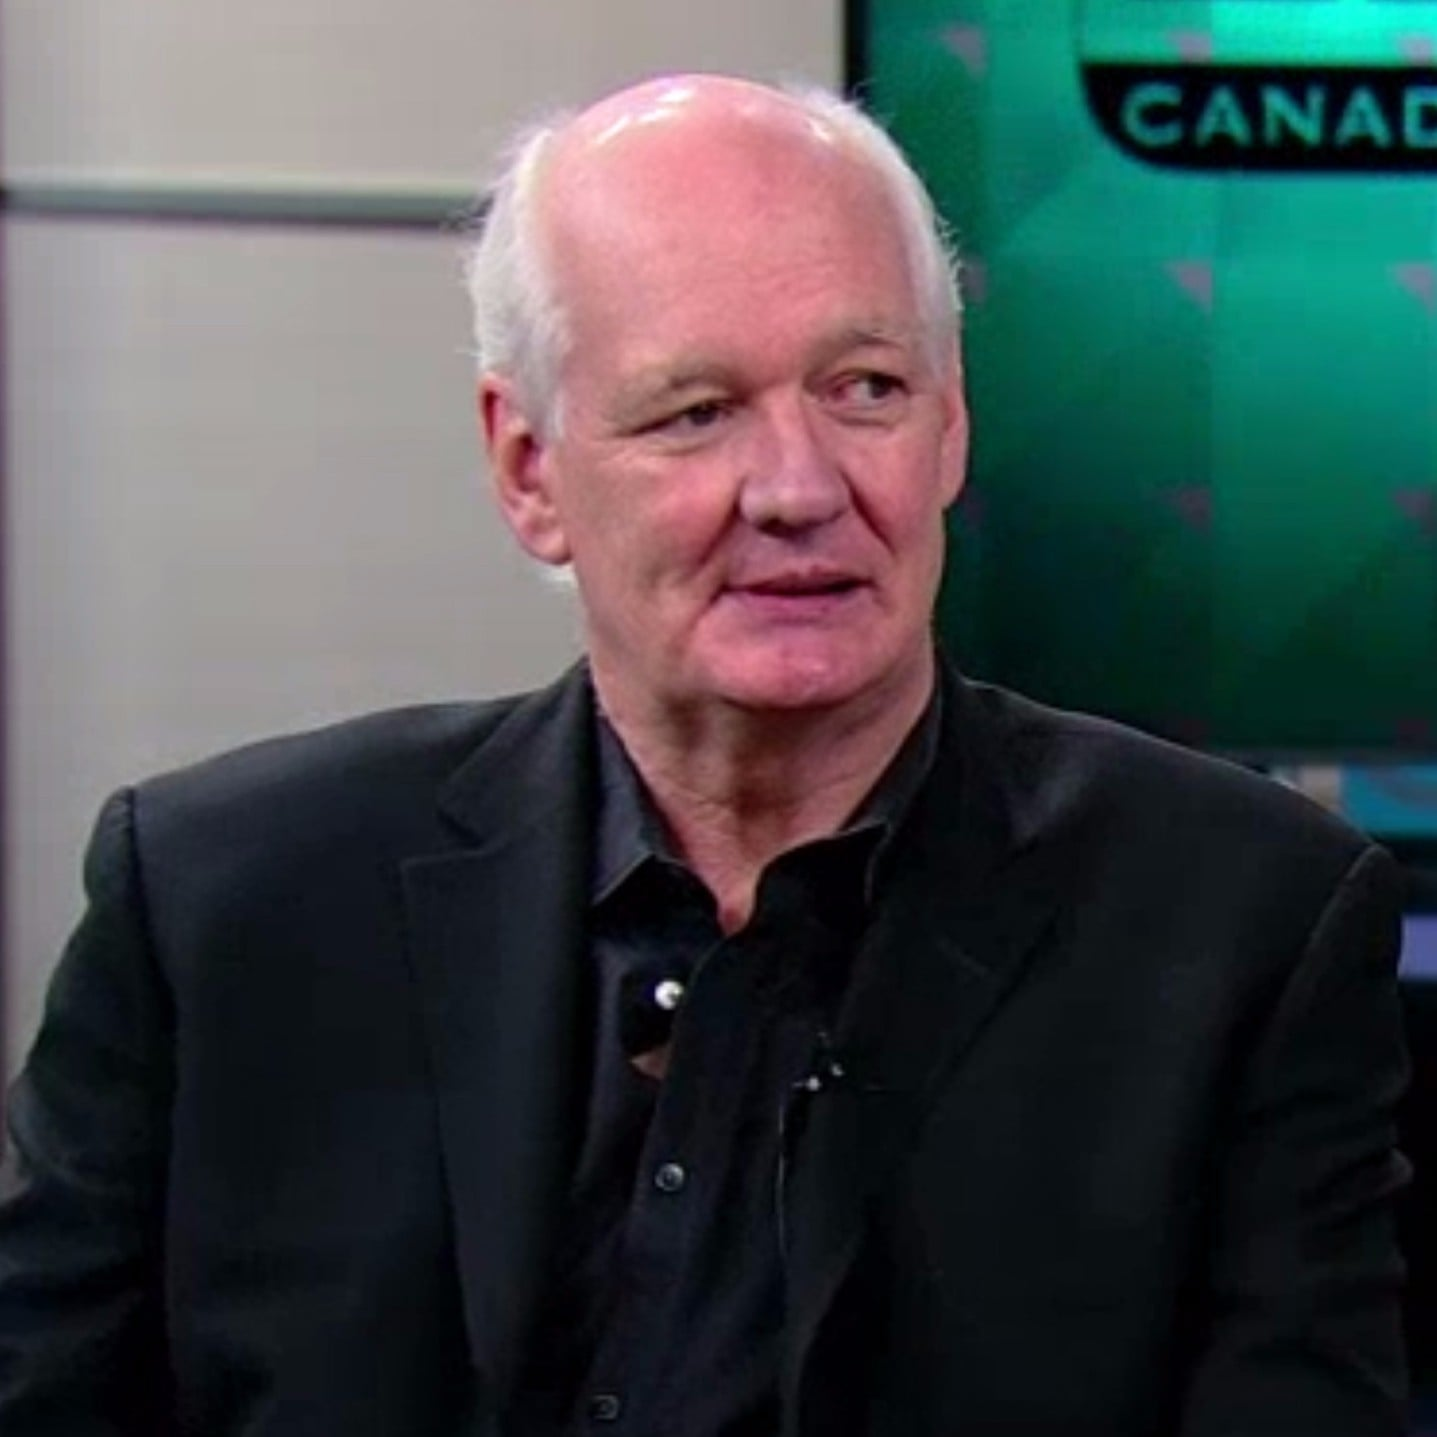 Colin Mochrie nudes (64 photo), Ass, Cleavage, Instagram, cameltoe 2019